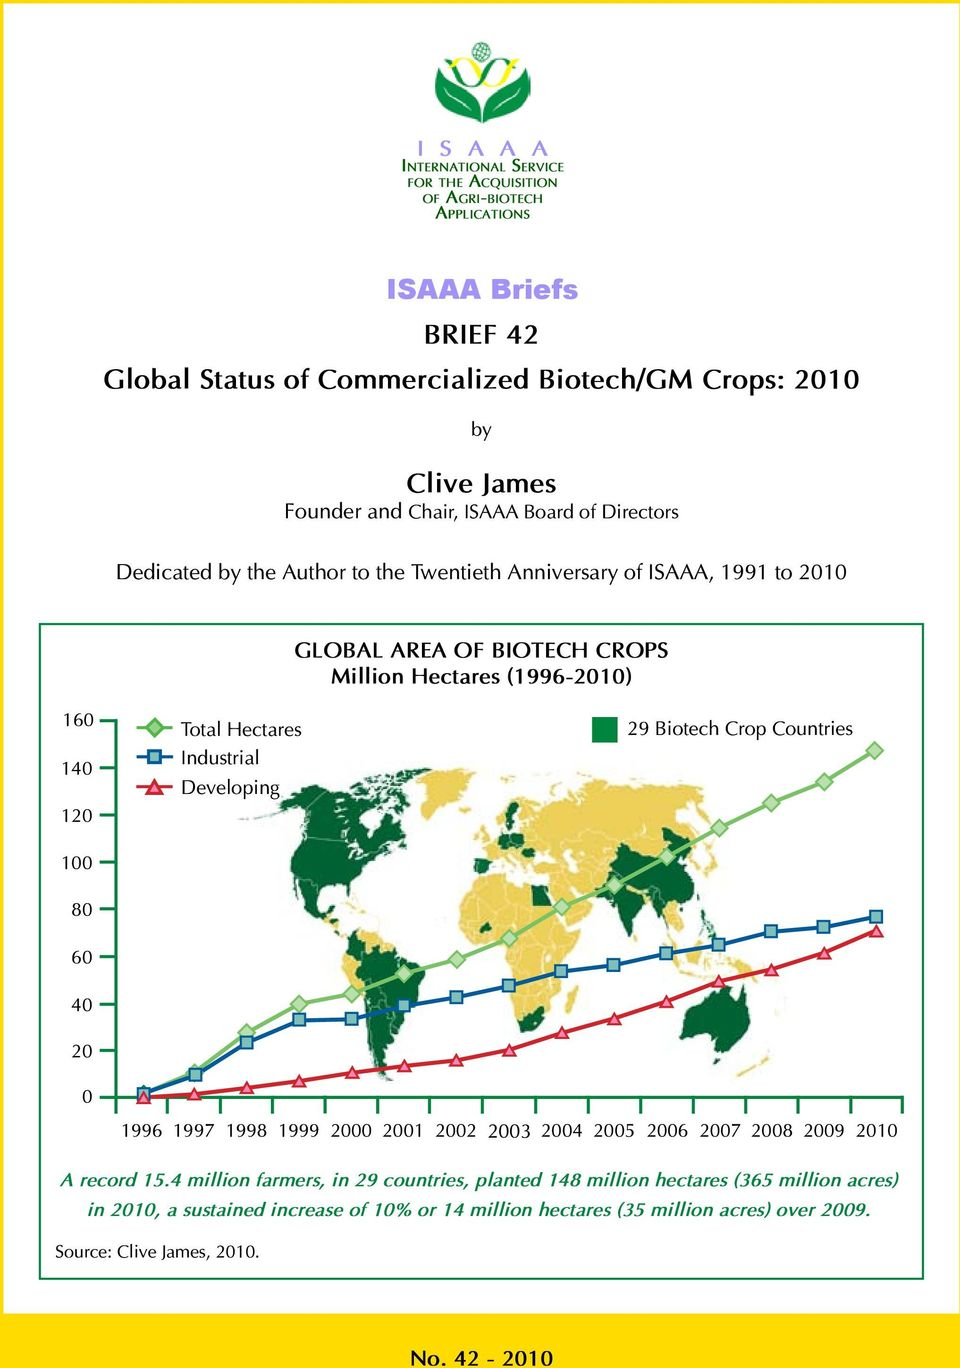 120 100 Total Hectares Industrial Developing 29 Biotech Crop Countries 80 60 40 20 0 1996 1997 1998 1999 2000 2001 2002 2003 2004 2005 2006 2007 2008 2009 2010 A record 15.